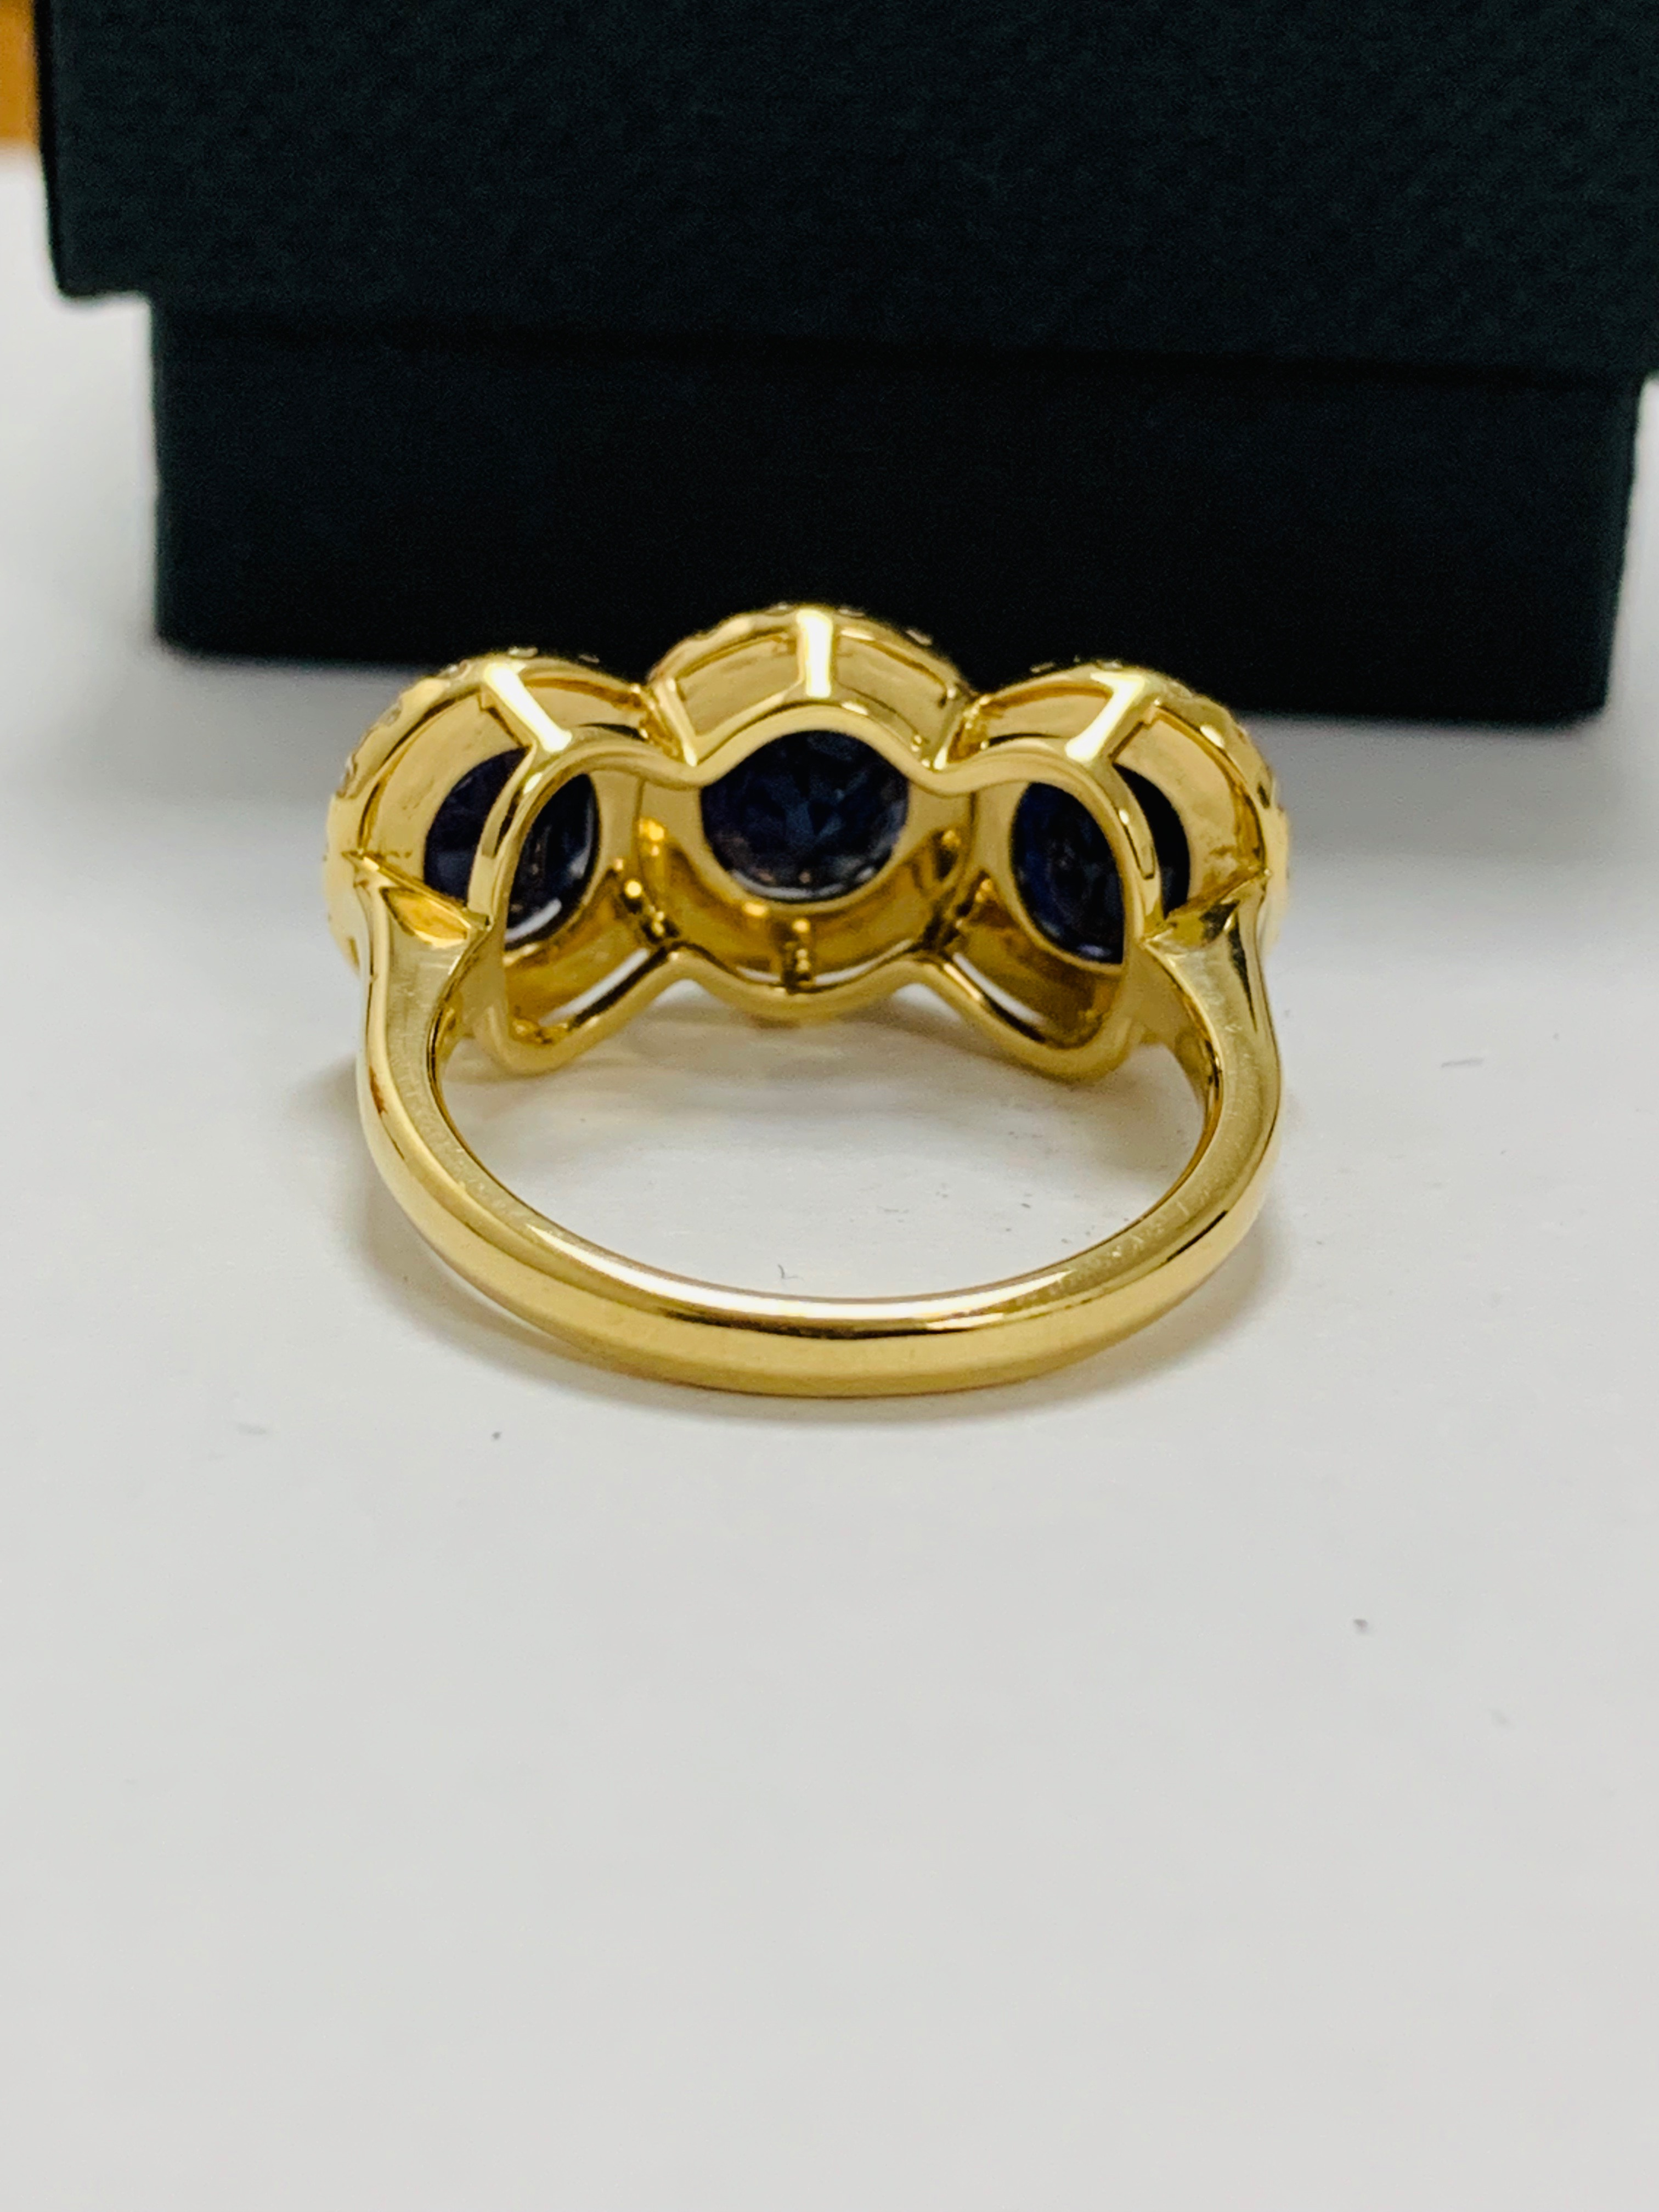 18ct yellow gold sapphire and diamond ring - Image 6 of 12